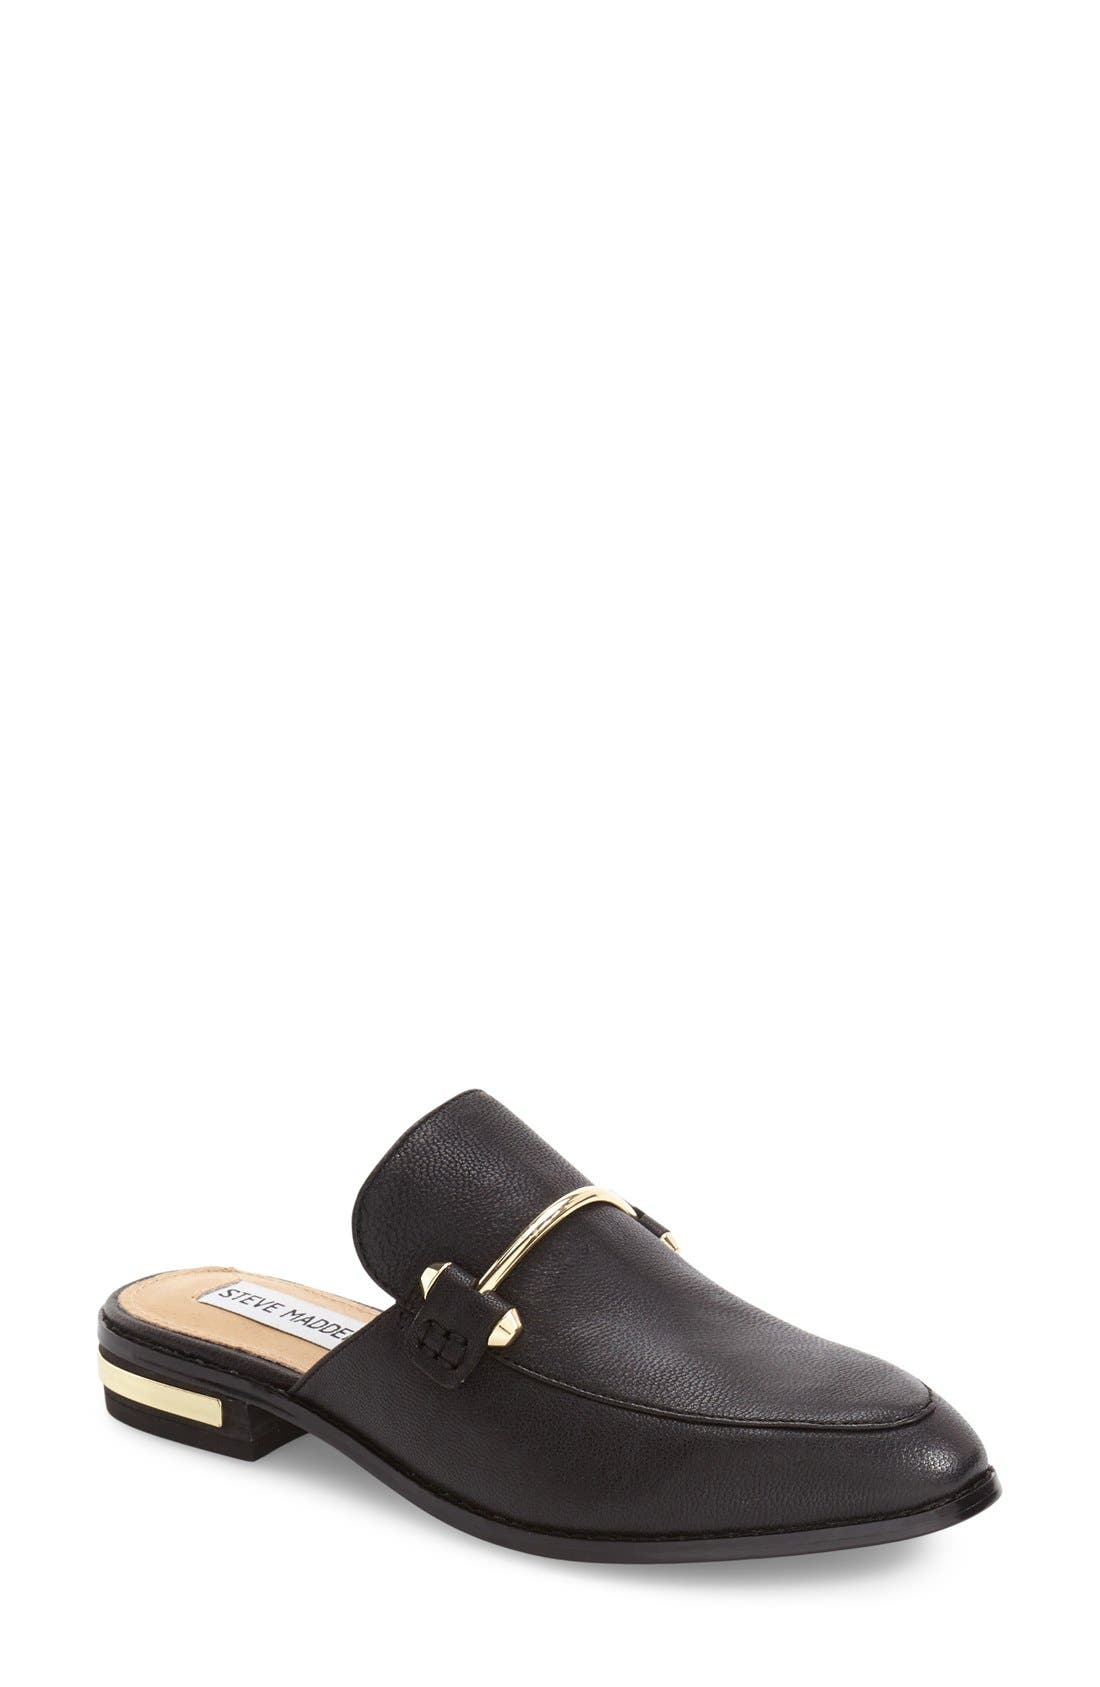 Alternate Image 1 Selected - Steve Madden Laaura Backless Loafer (Women)